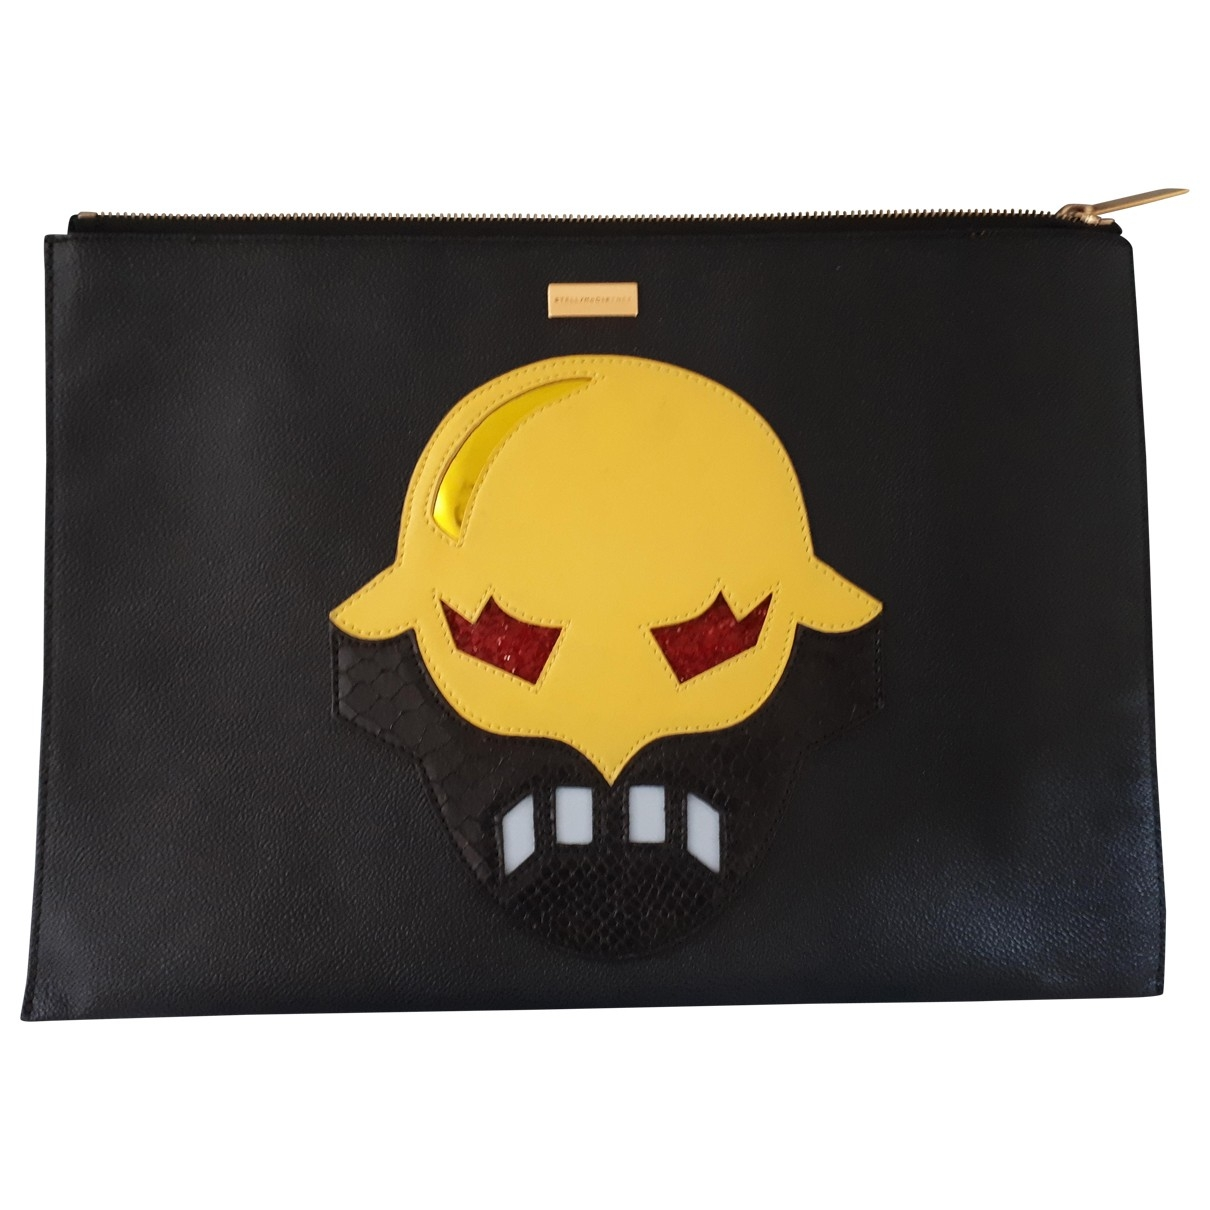 Stella Mccartney \N Black Clutch bag for Women \N